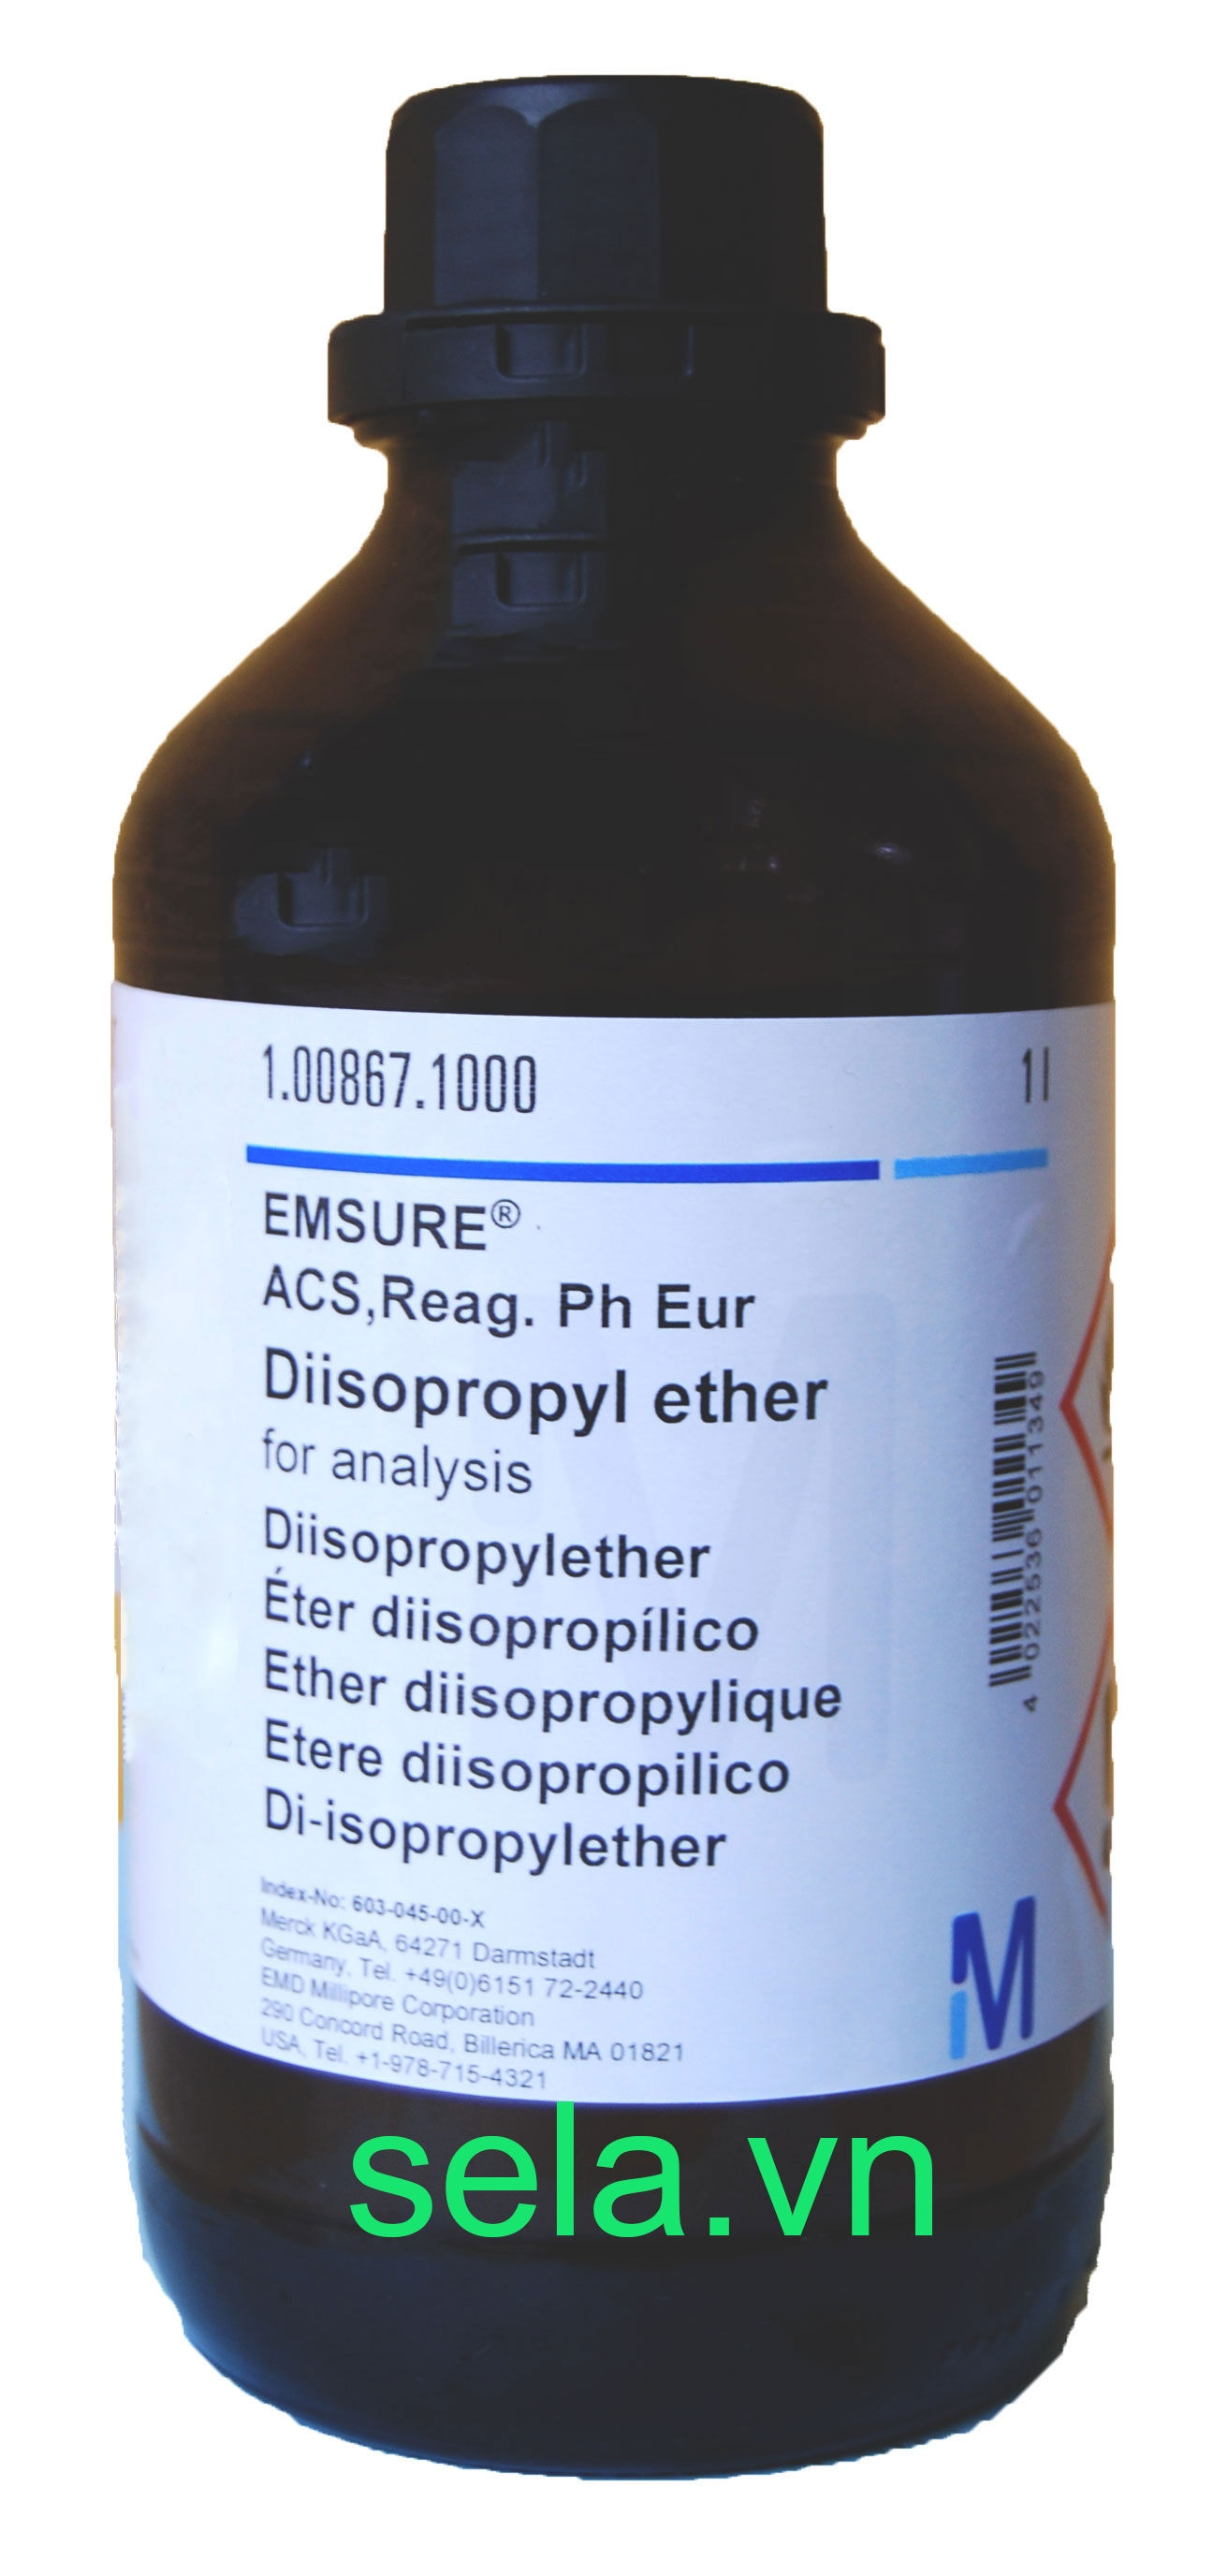 Diisopropyl ether for analysis EMSURE® ACS,Reag. Ph Eur